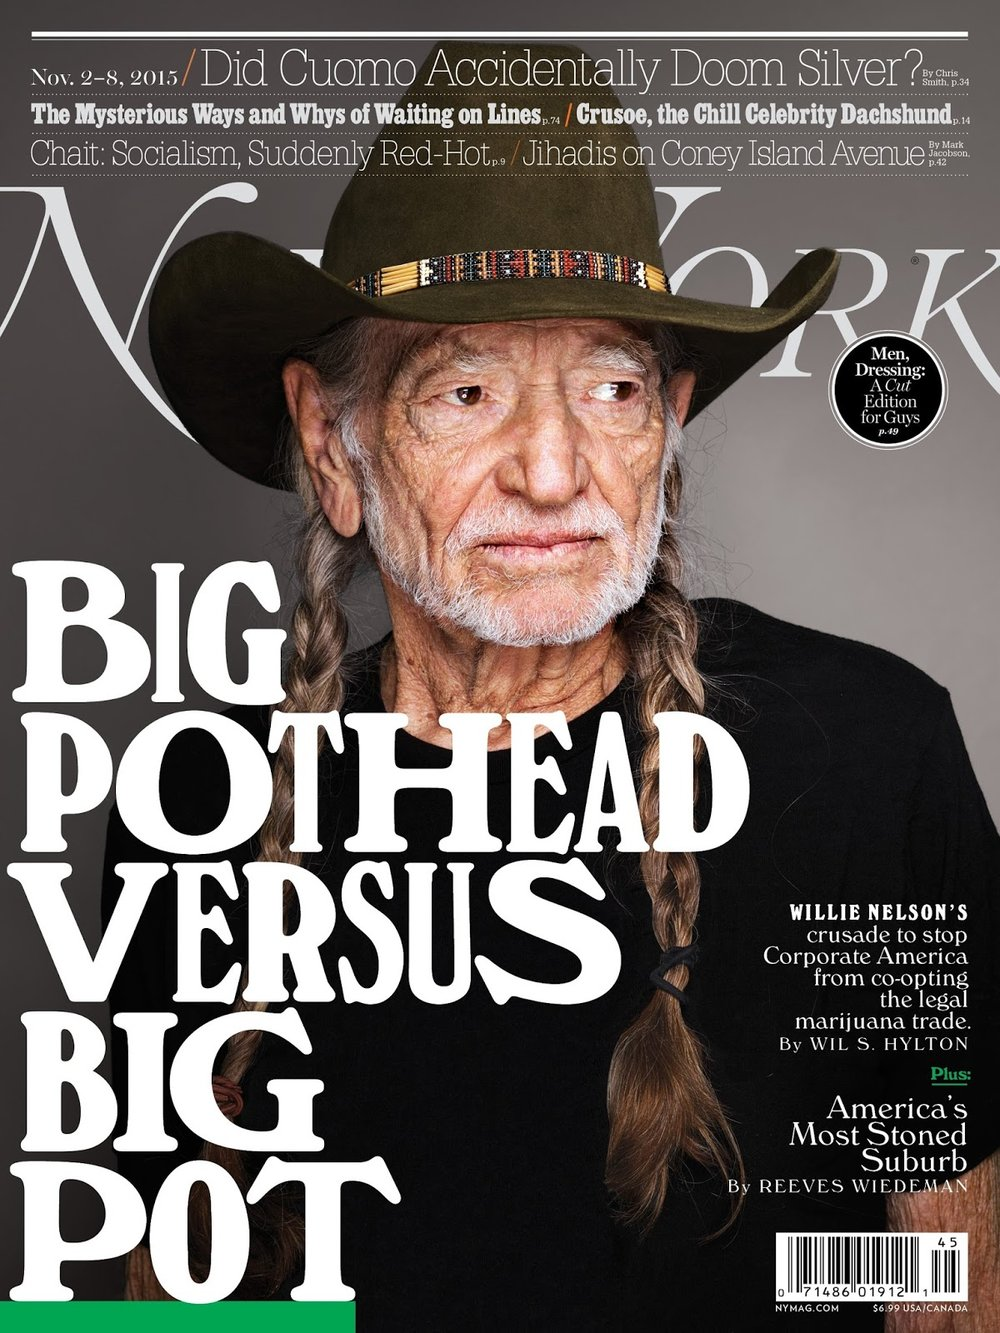 NY Magazine: Big Pothead Versus Big Pot